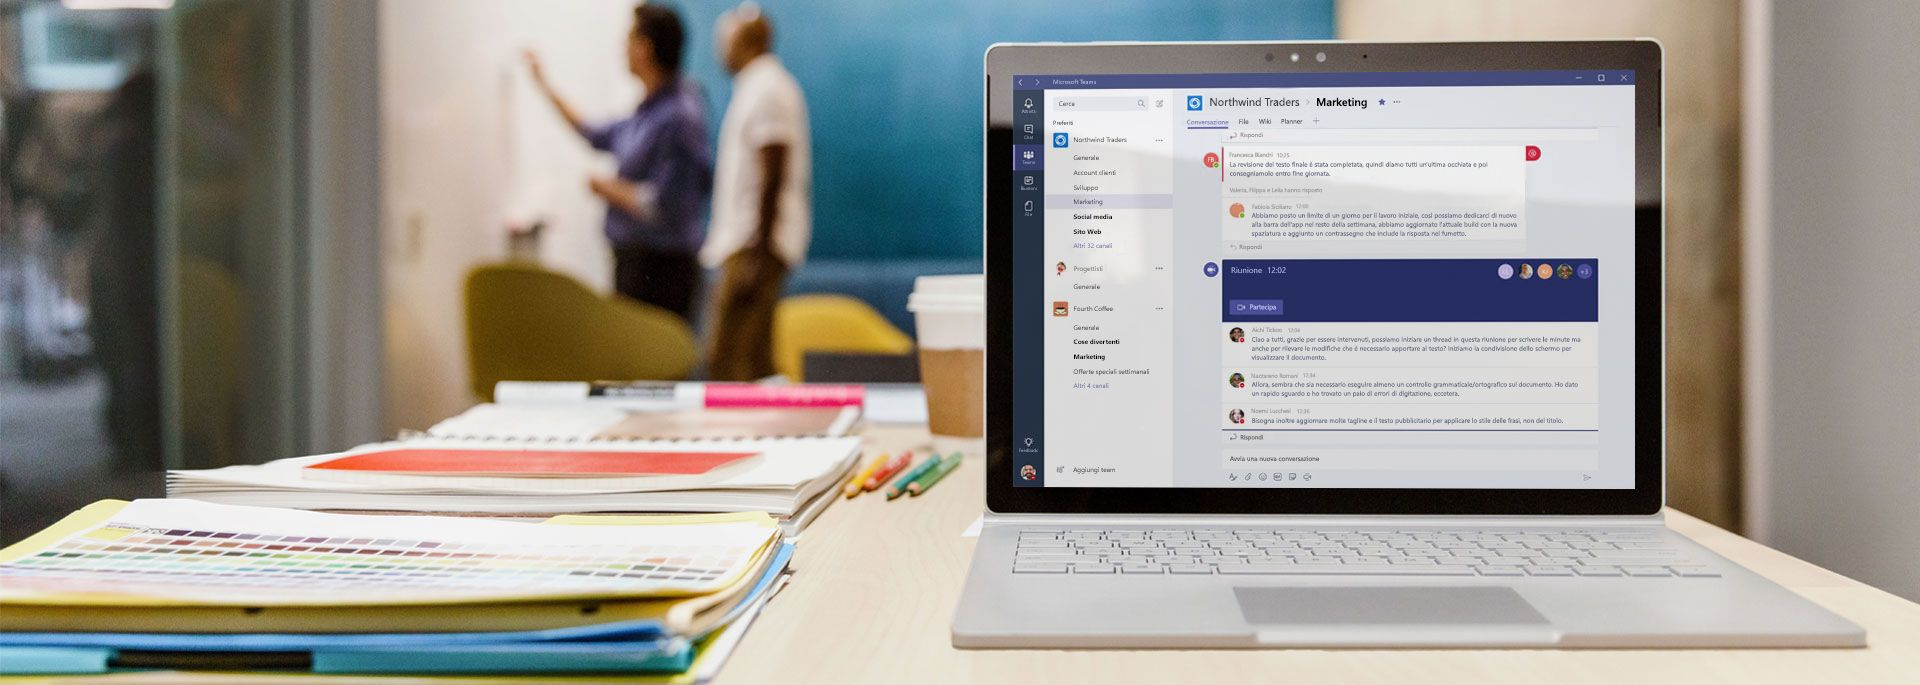 Tablet che visualizza le conversazioni in chat in Microsoft Teams